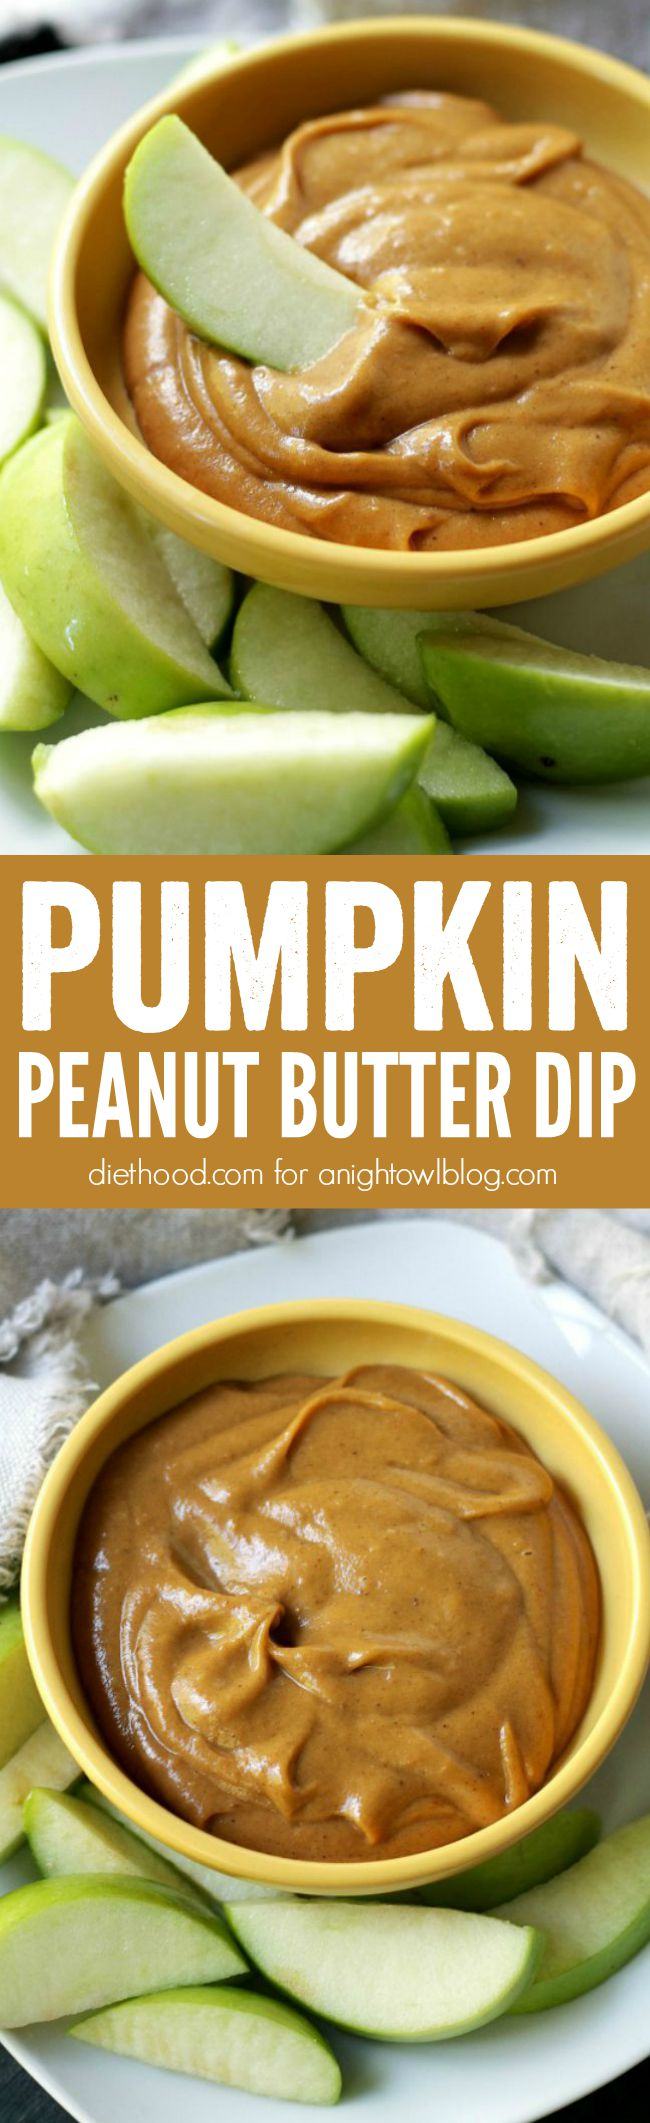 All the flavors of fall in one simple, super-delicious Pumpkin Peanut Butter Dip.